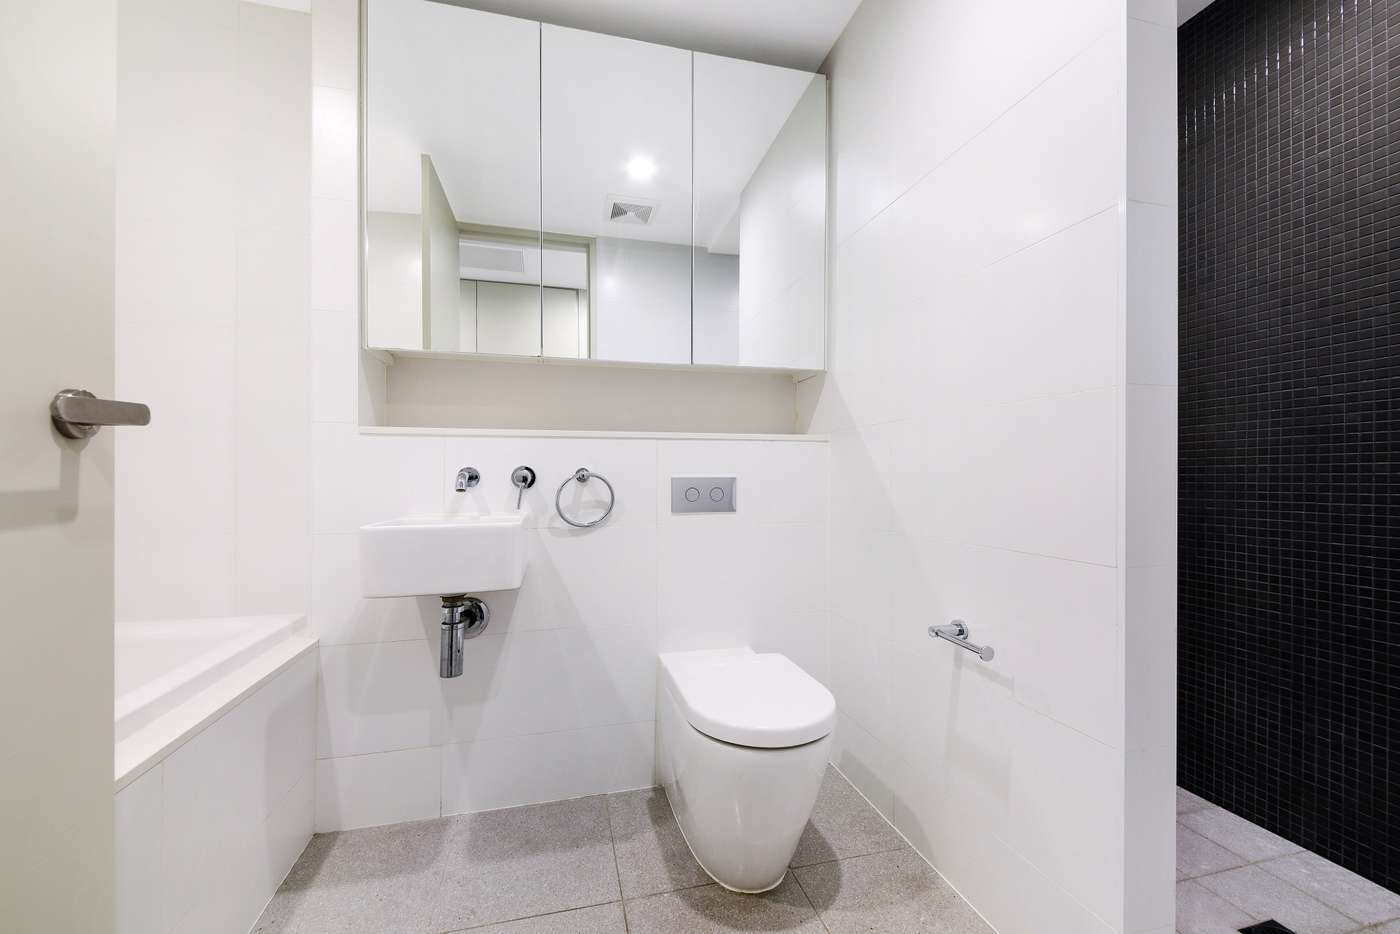 Sixth view of Homely apartment listing, 707/8 Princess Street, Brighton-le-sands NSW 2216